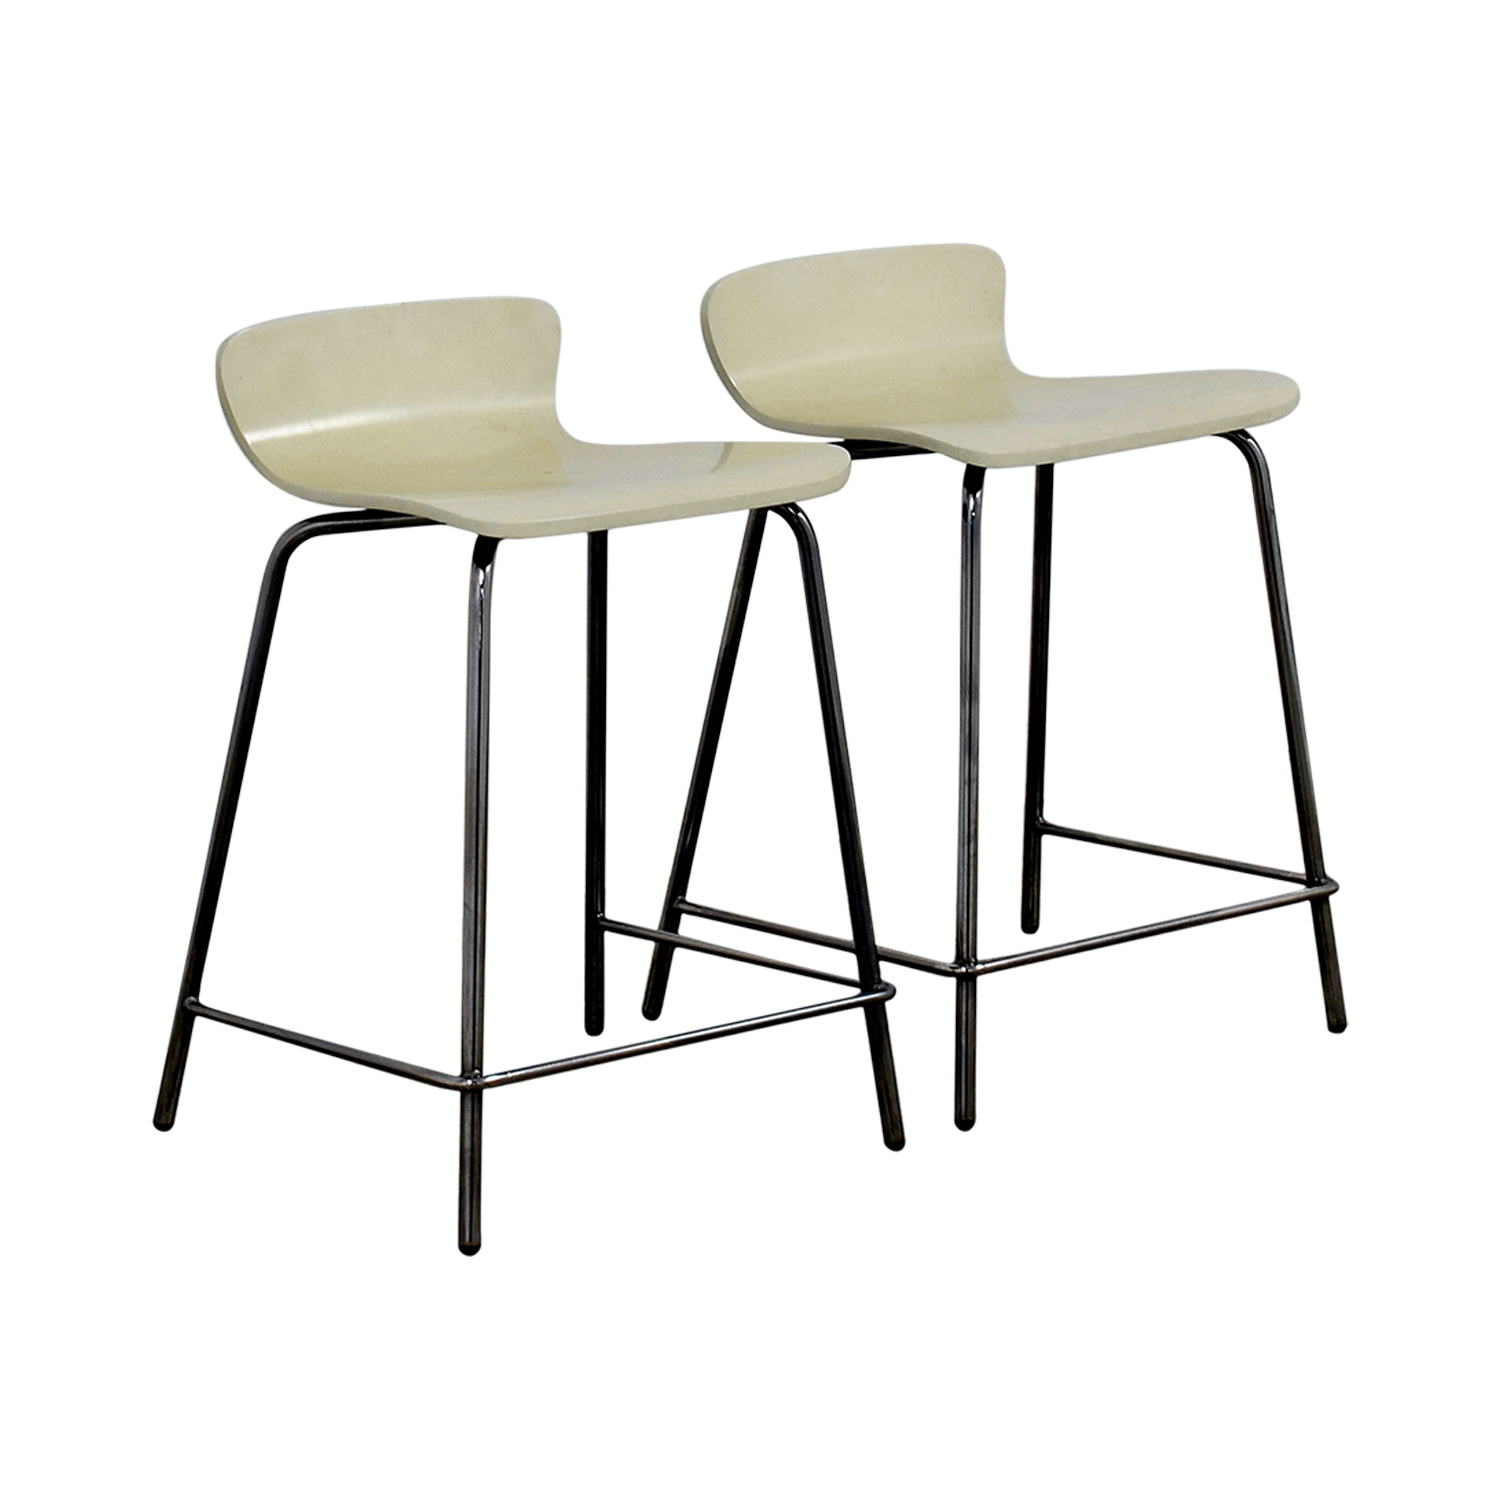 Crate & Barrel Crate & Barrel Felix White Counter Stools Cream / Chrome